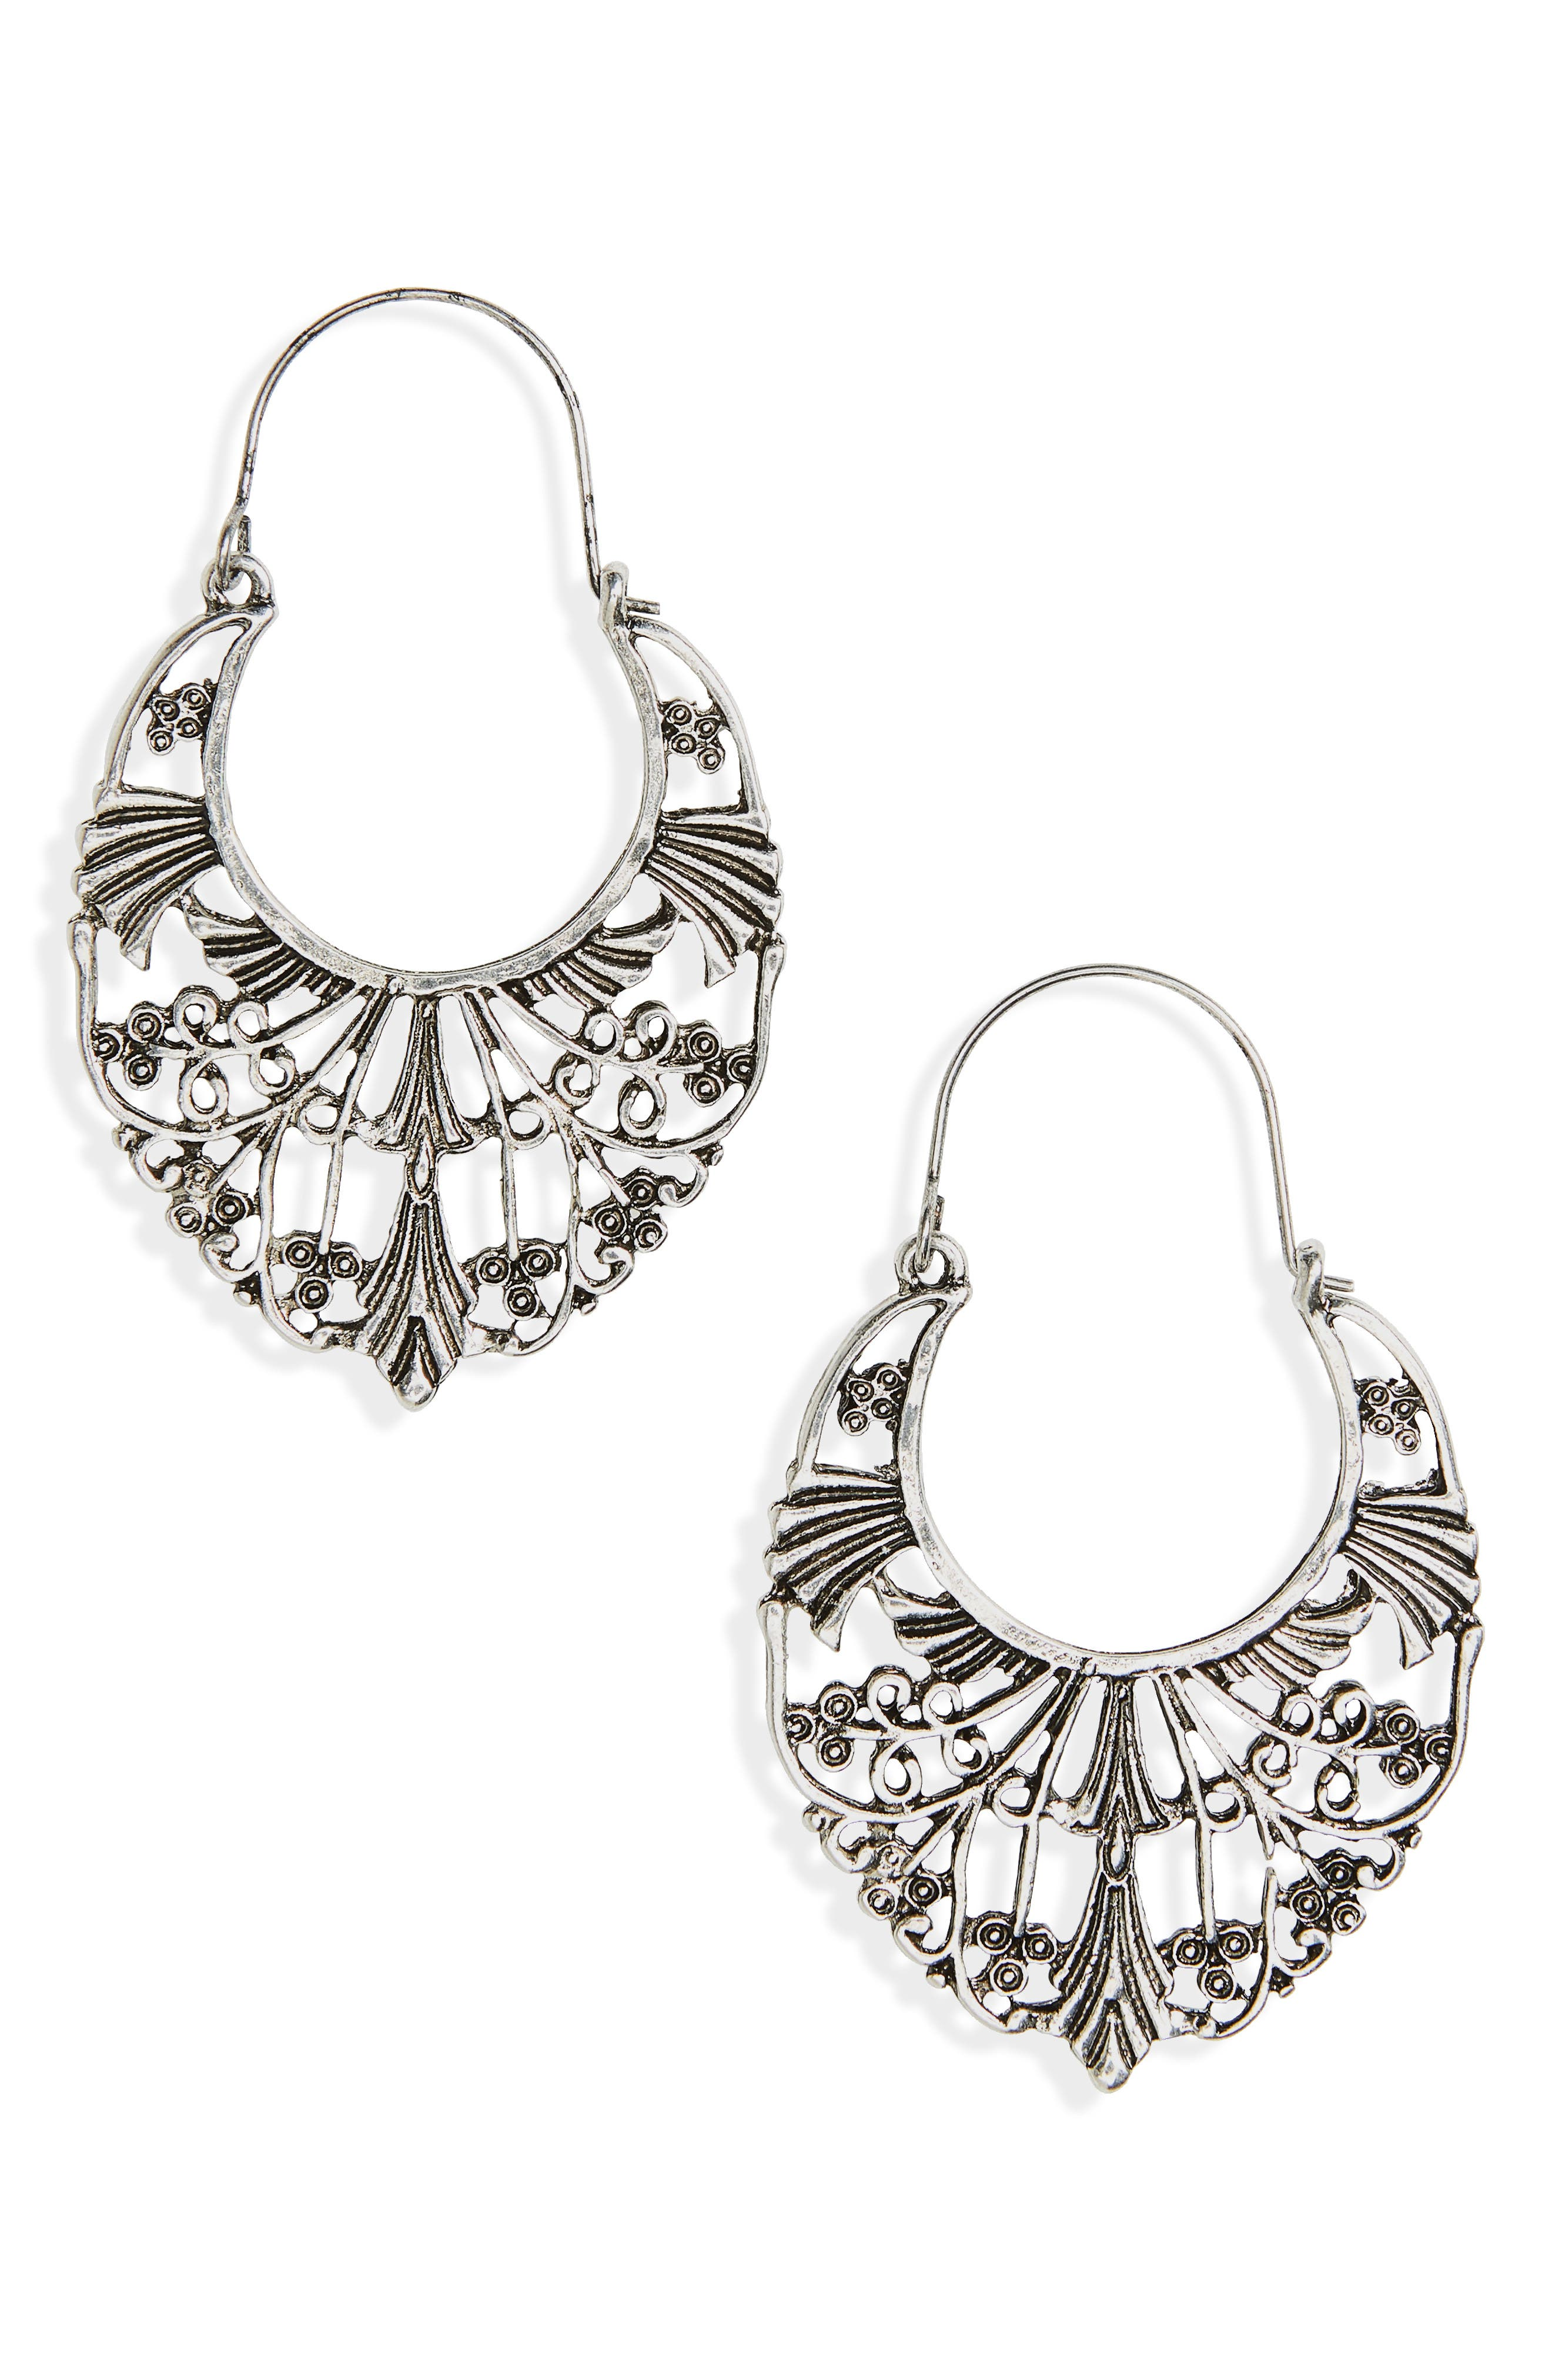 Ornate Statement Earrings,                         Main,                         color, Silver